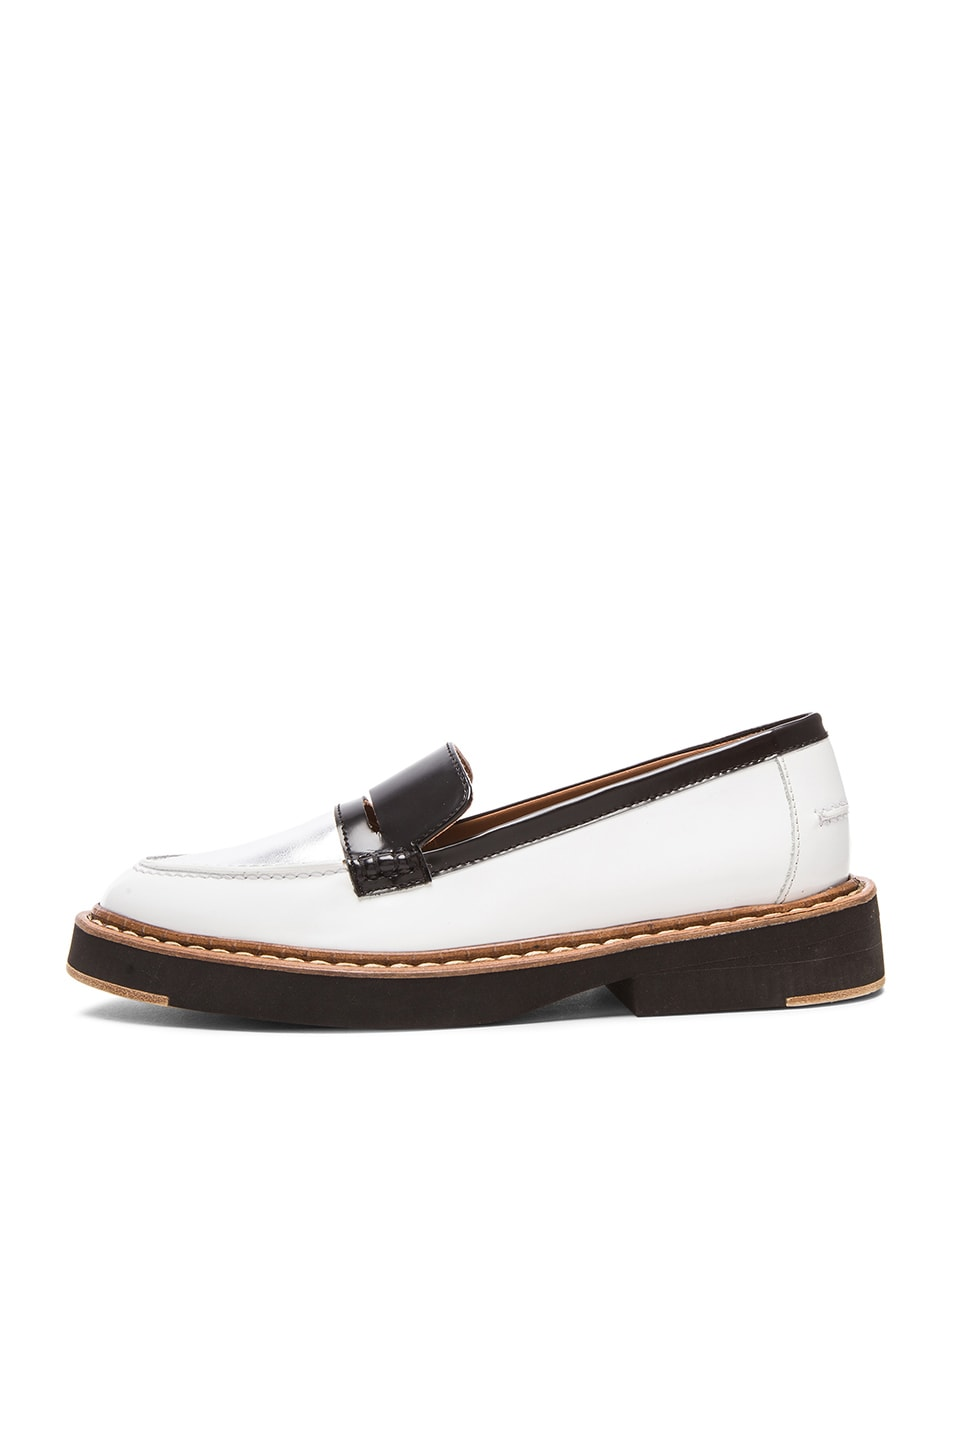 Image 5 of Flamingos Walton Leather Loafers in Black, Silver, & White